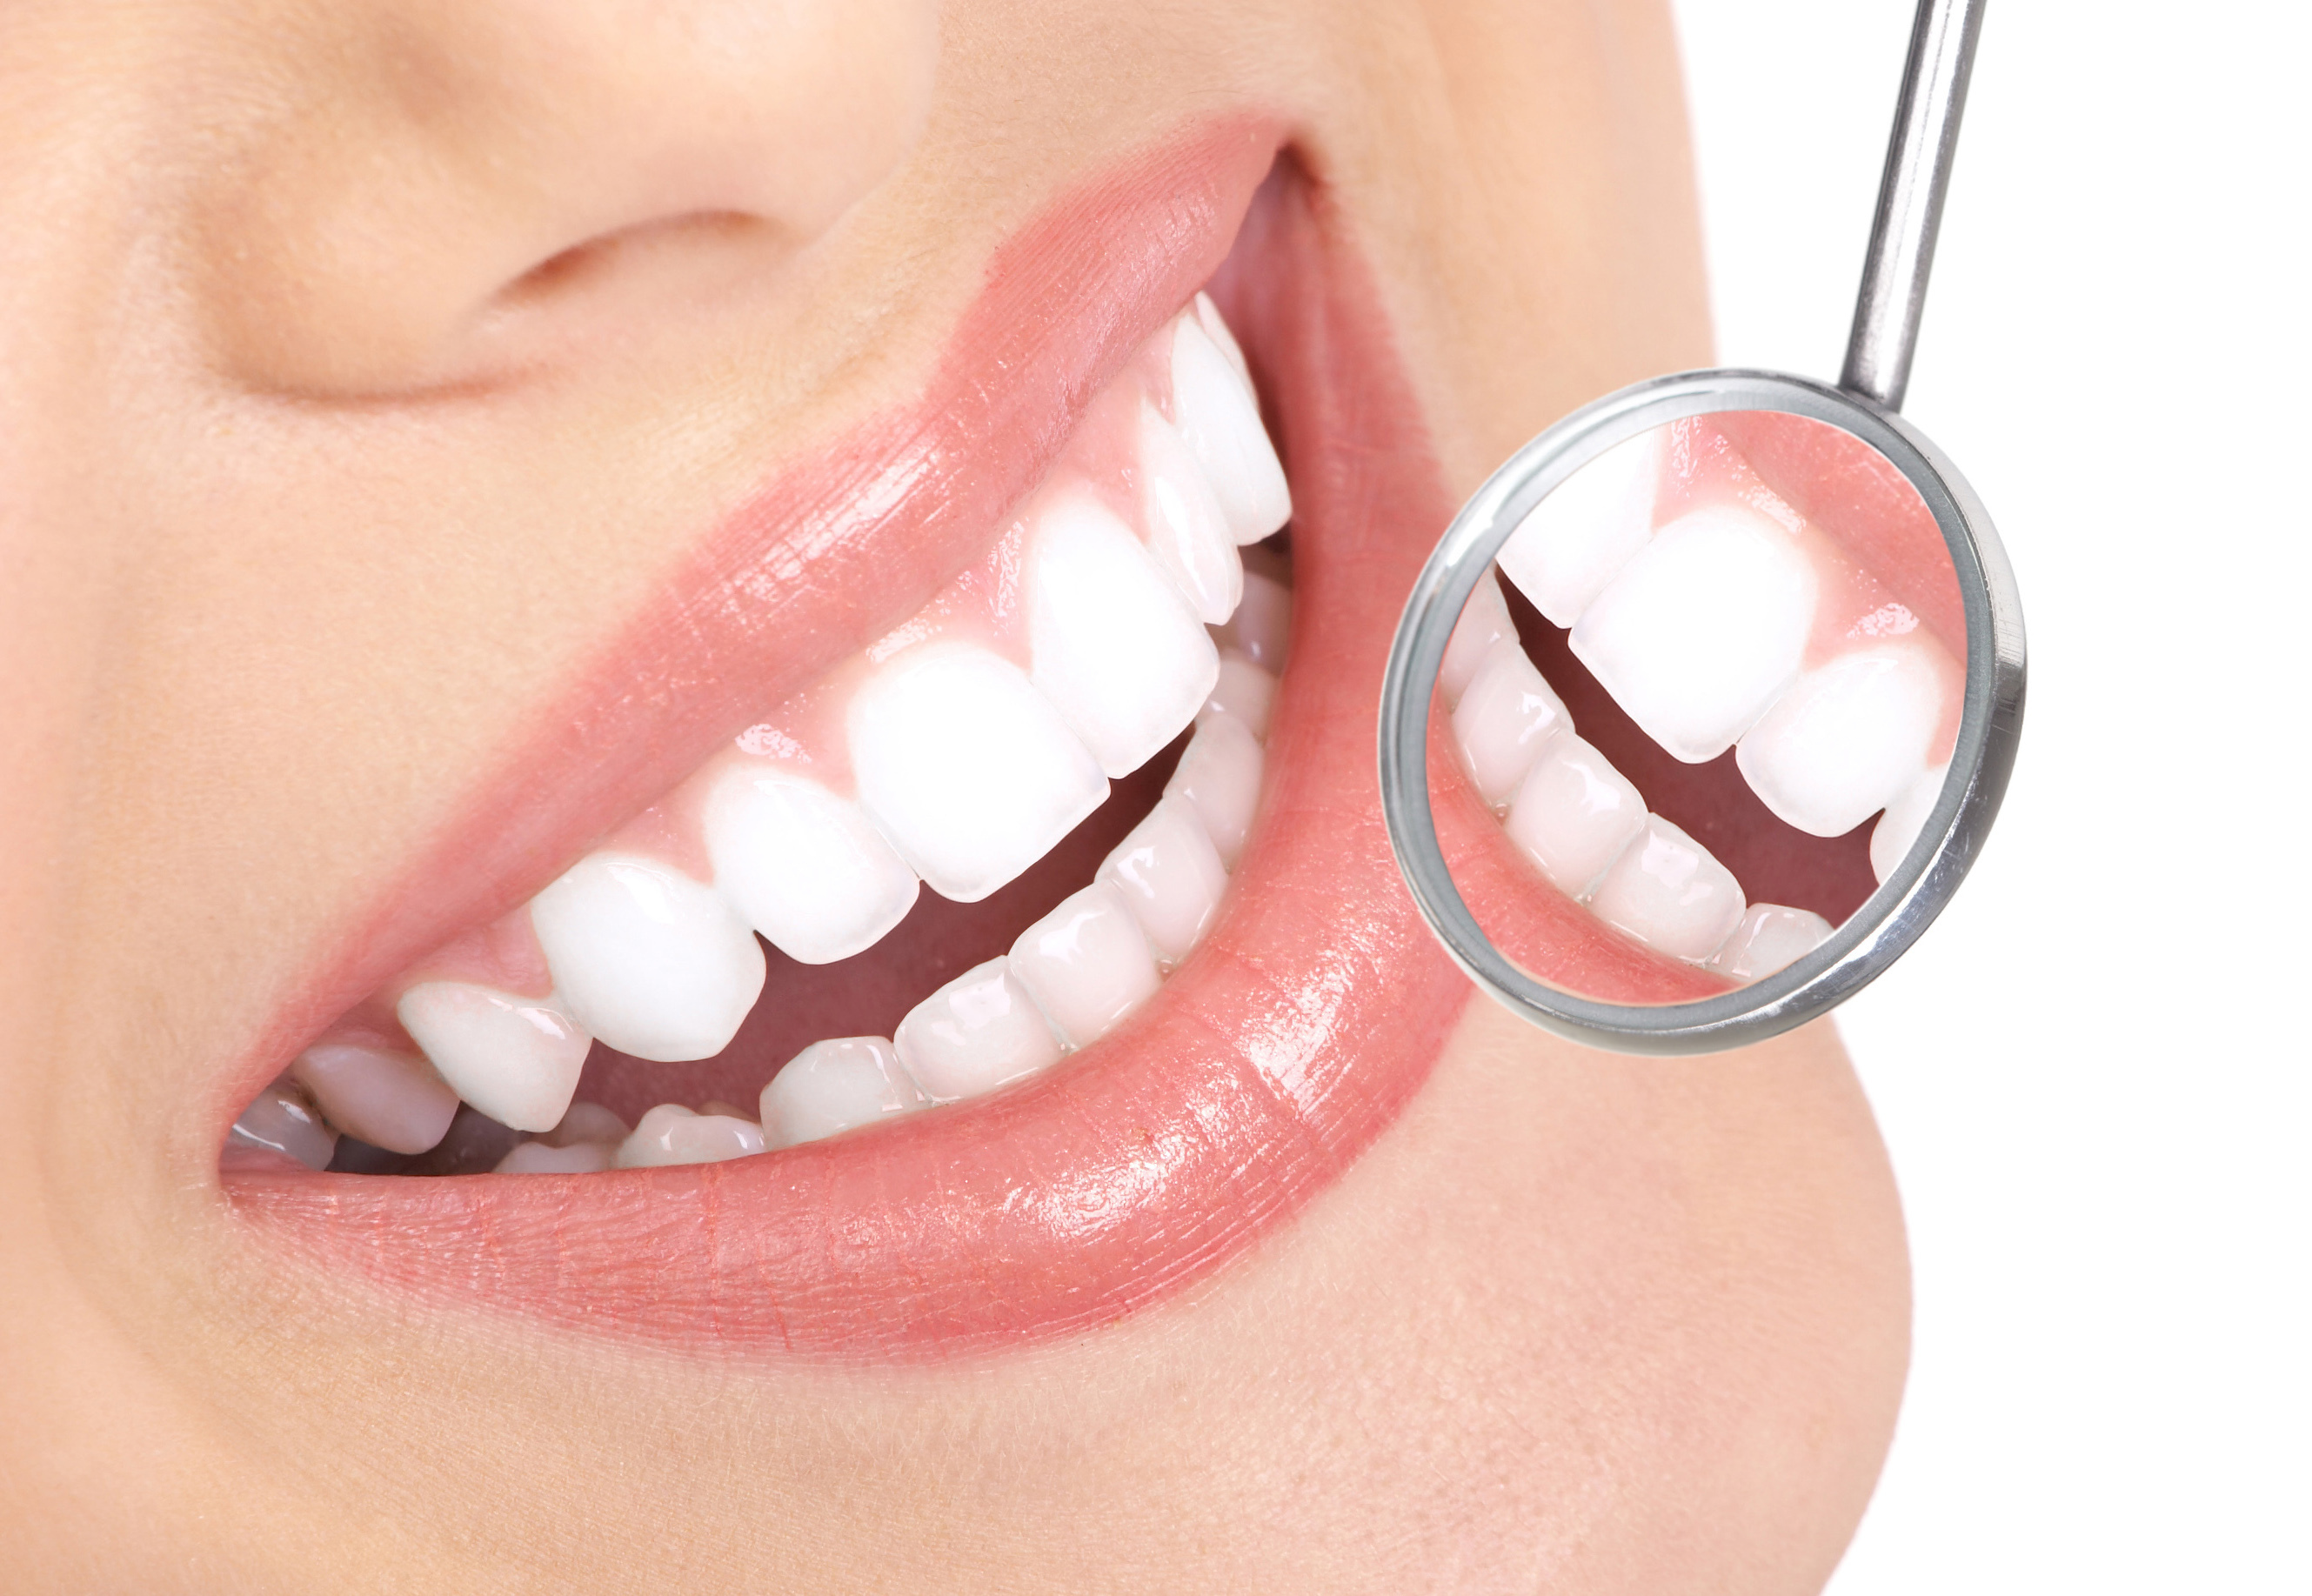 raghav-dental-care-noida-1442646256-55fd08f0897c6.jpg